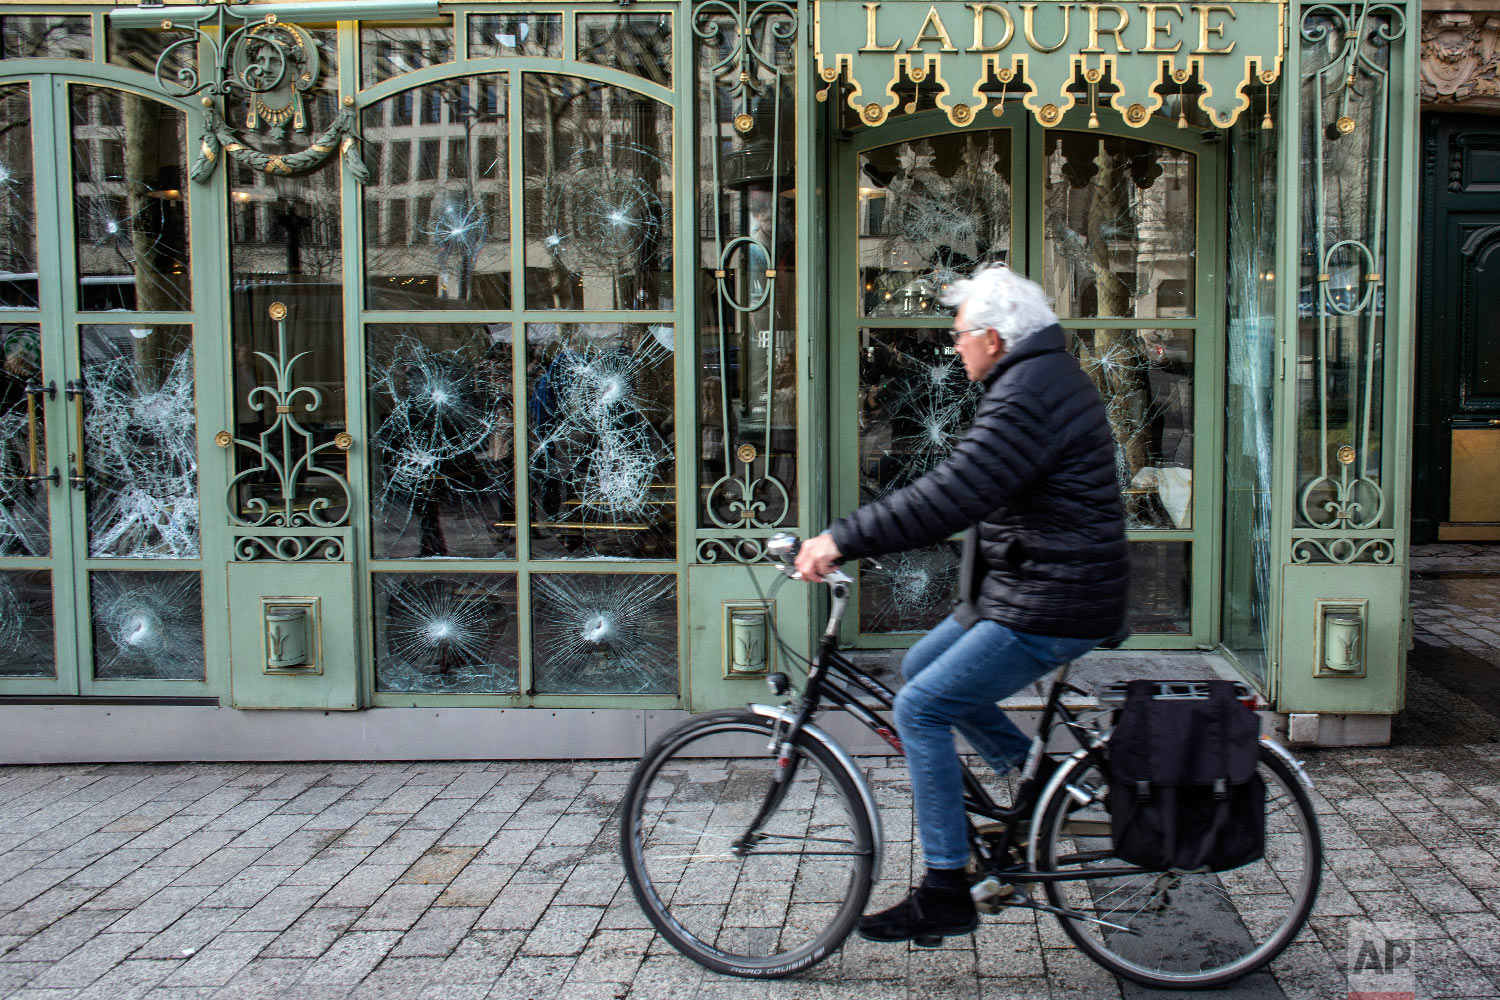 A cyclist rides past the smashed windows of the famed tea salon Laduree on the Champs Elysees the day after it was vandalized in Paris, France, March 17, 2019. (AP Photo/Rafael Yaghobzadeh)